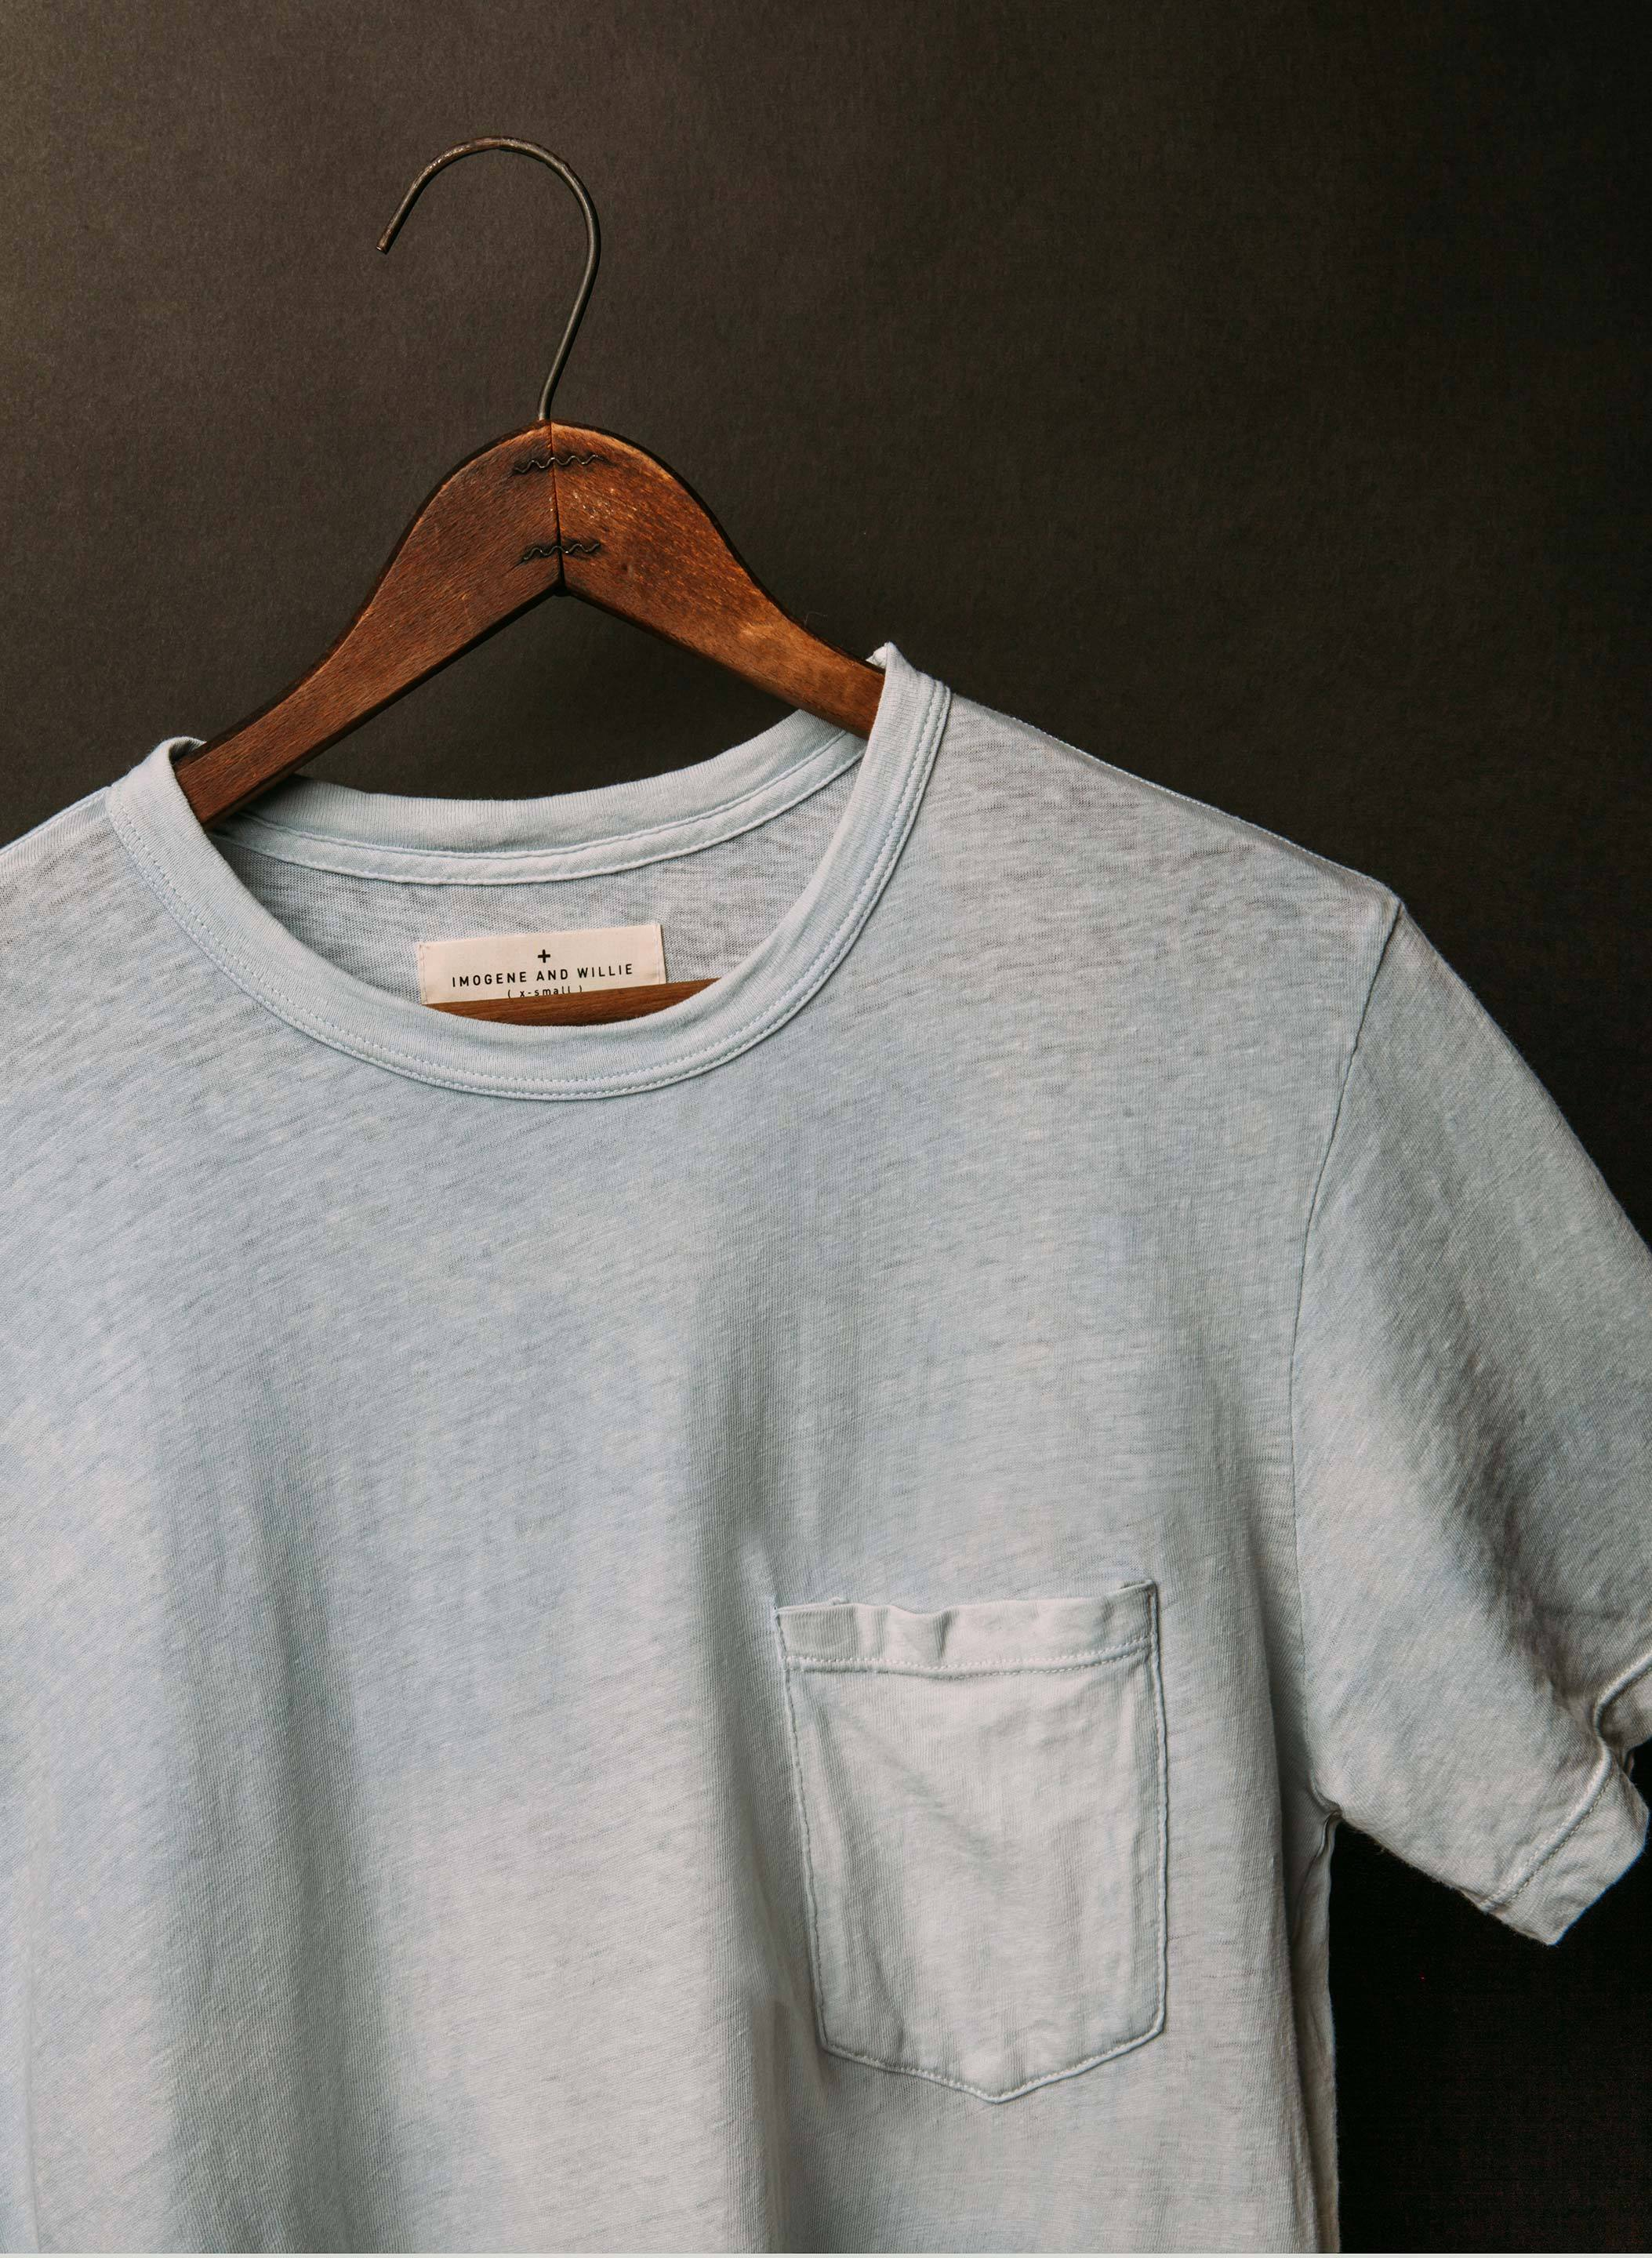 imogene + willie - pocket tee in faded indigo